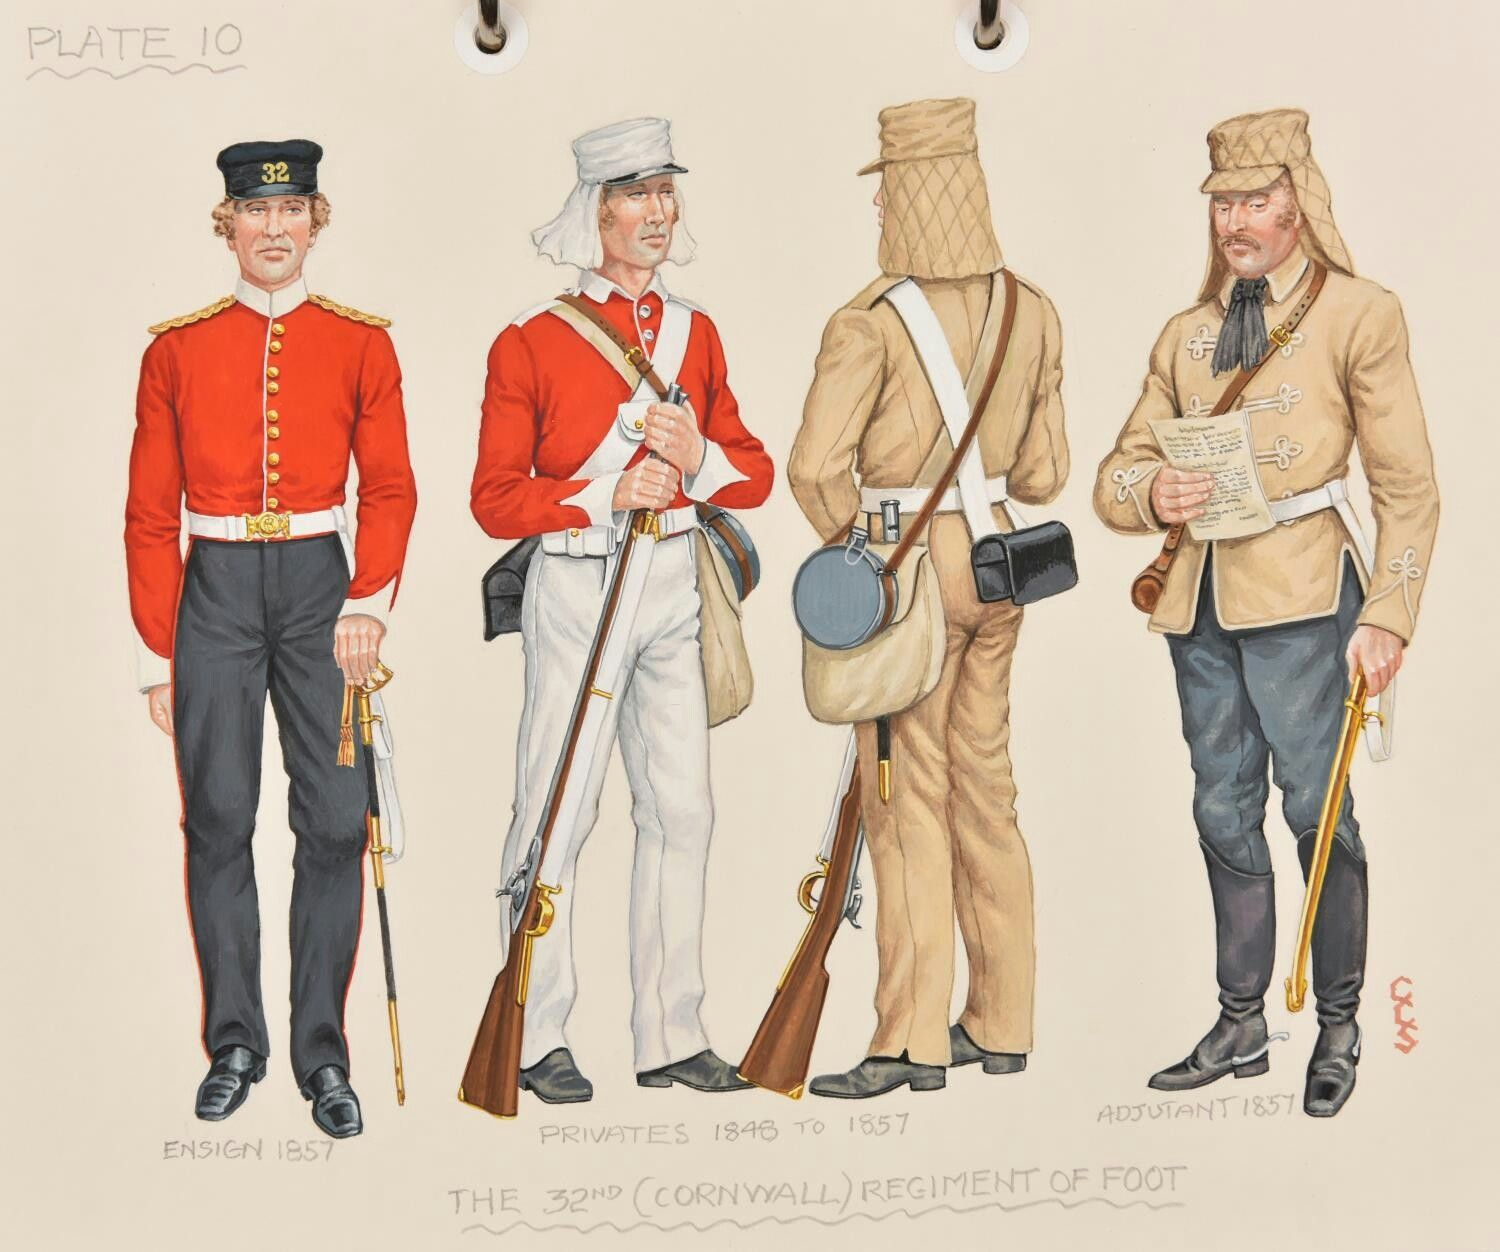 Pin by Turston Fitzrolf on British Military & Empire 1816